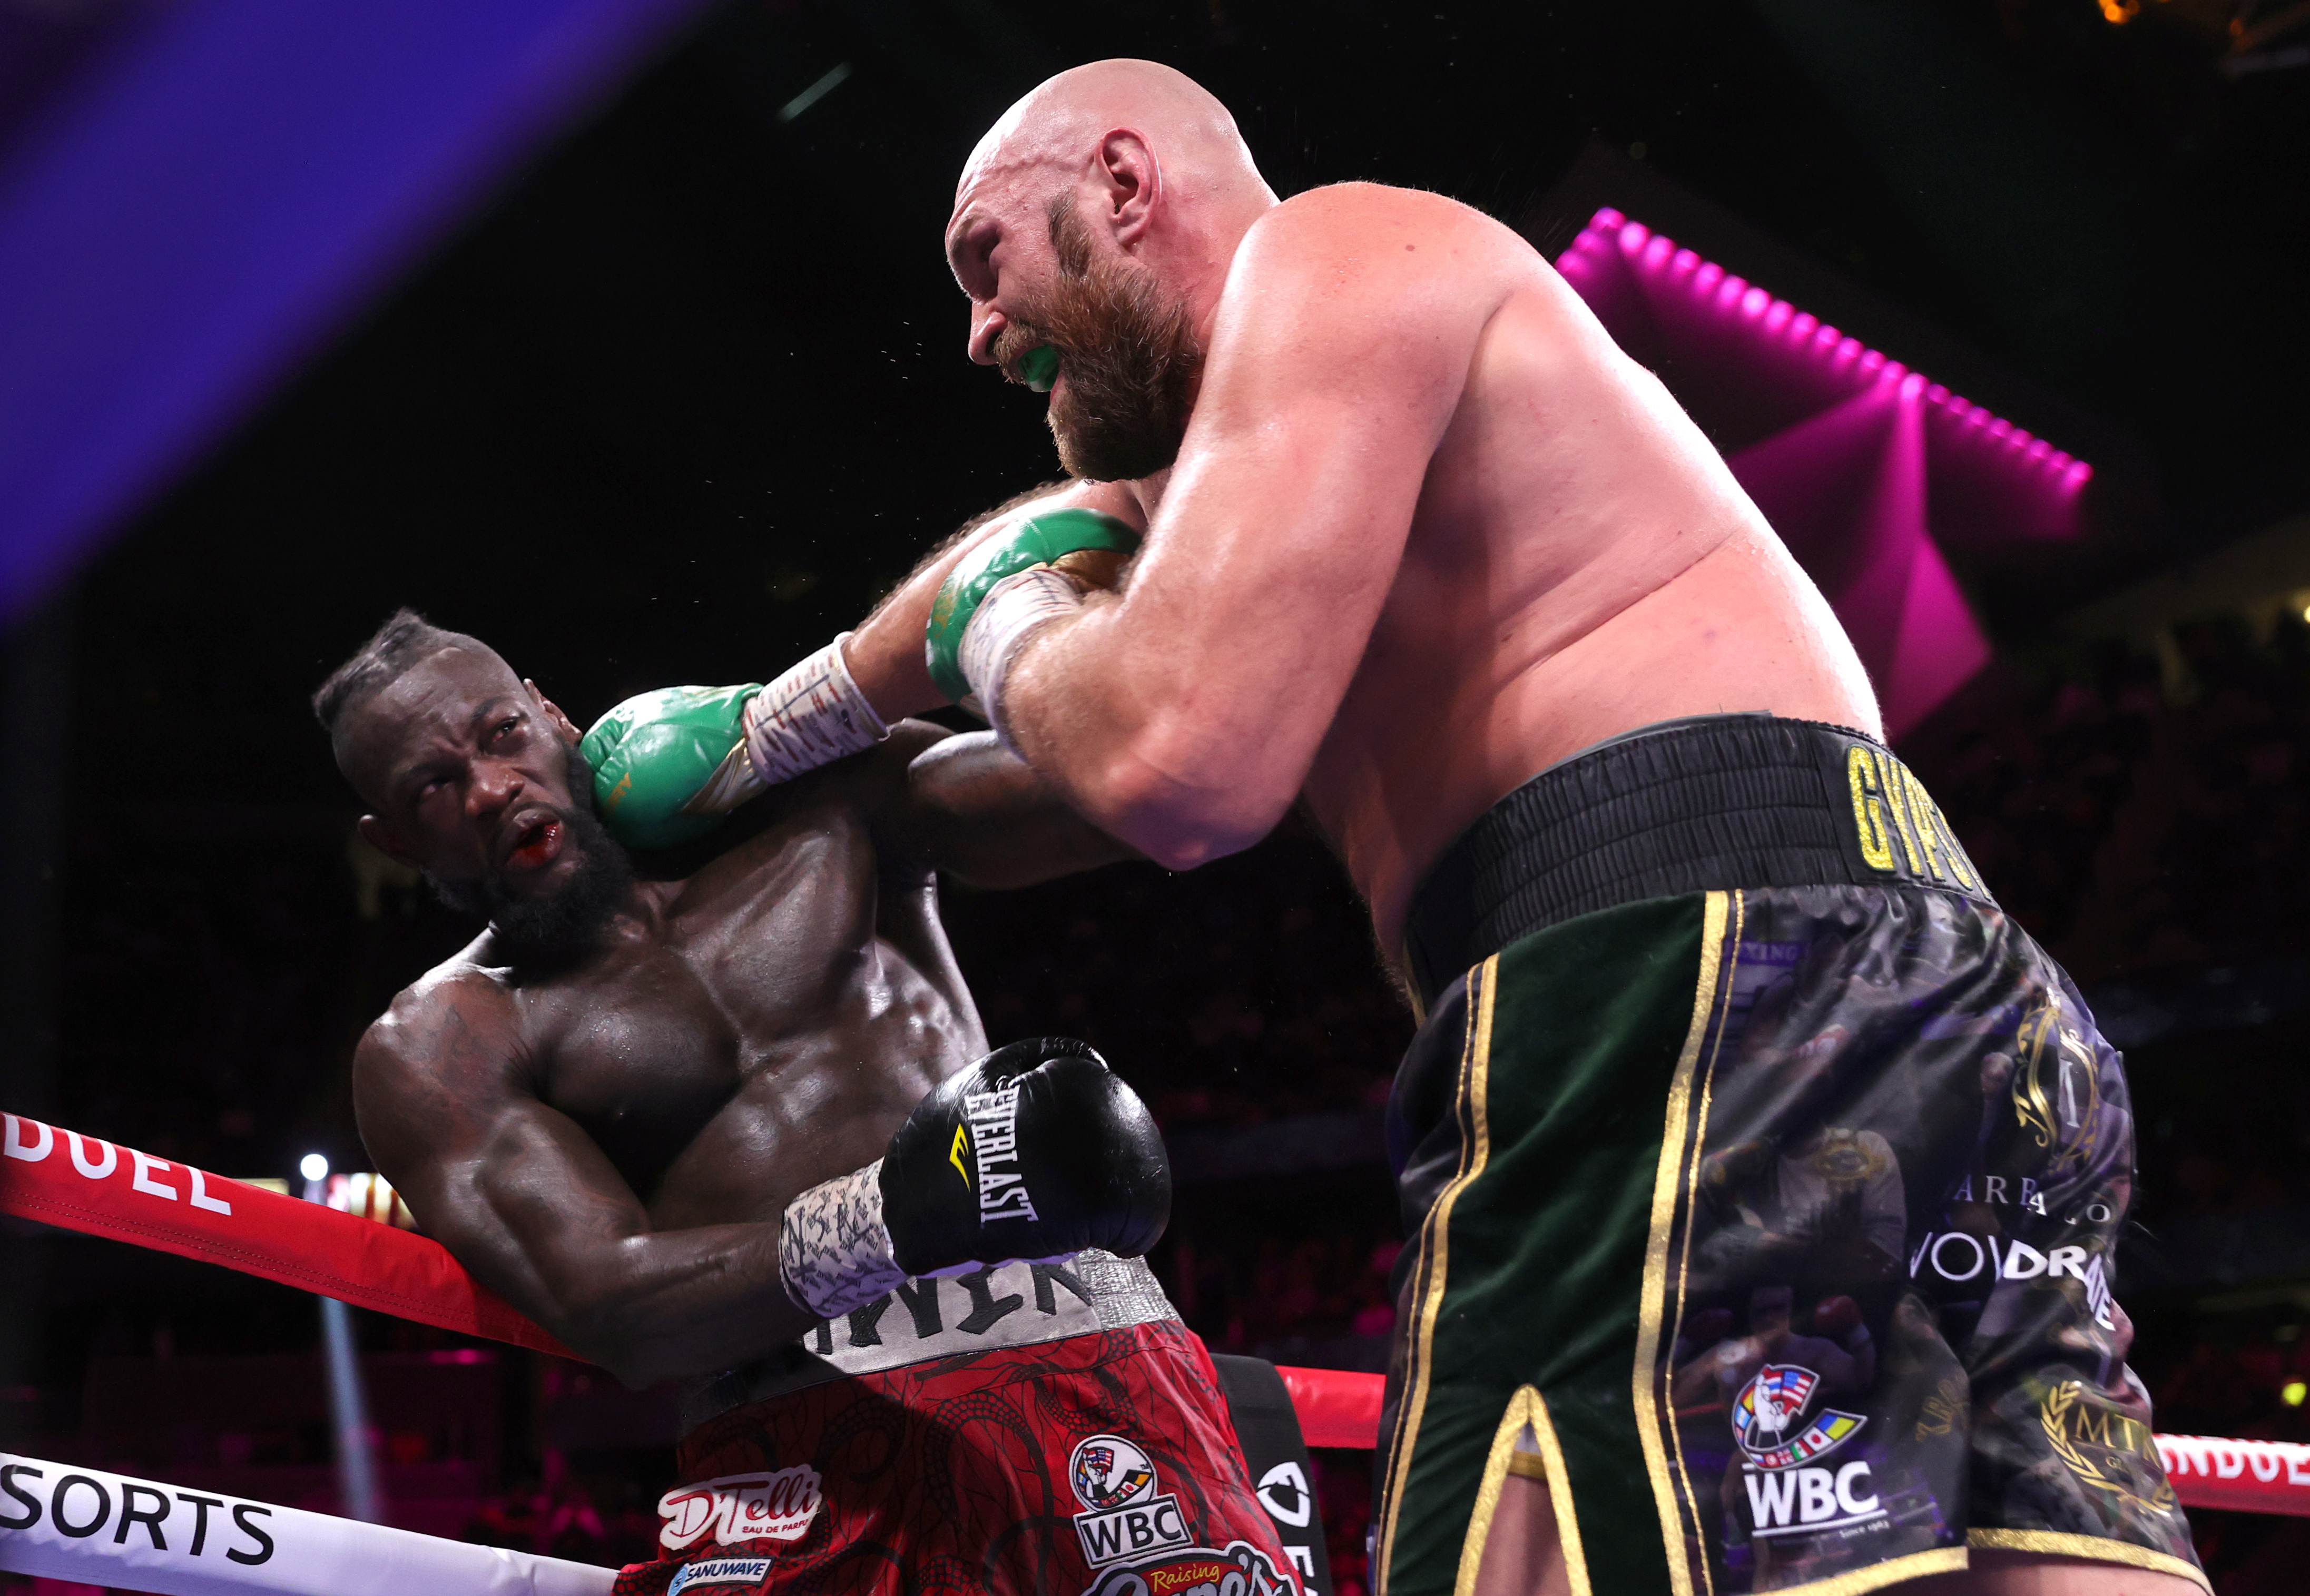 Tyson Fury knocked out Deontay Wilder in their trilogy bout.